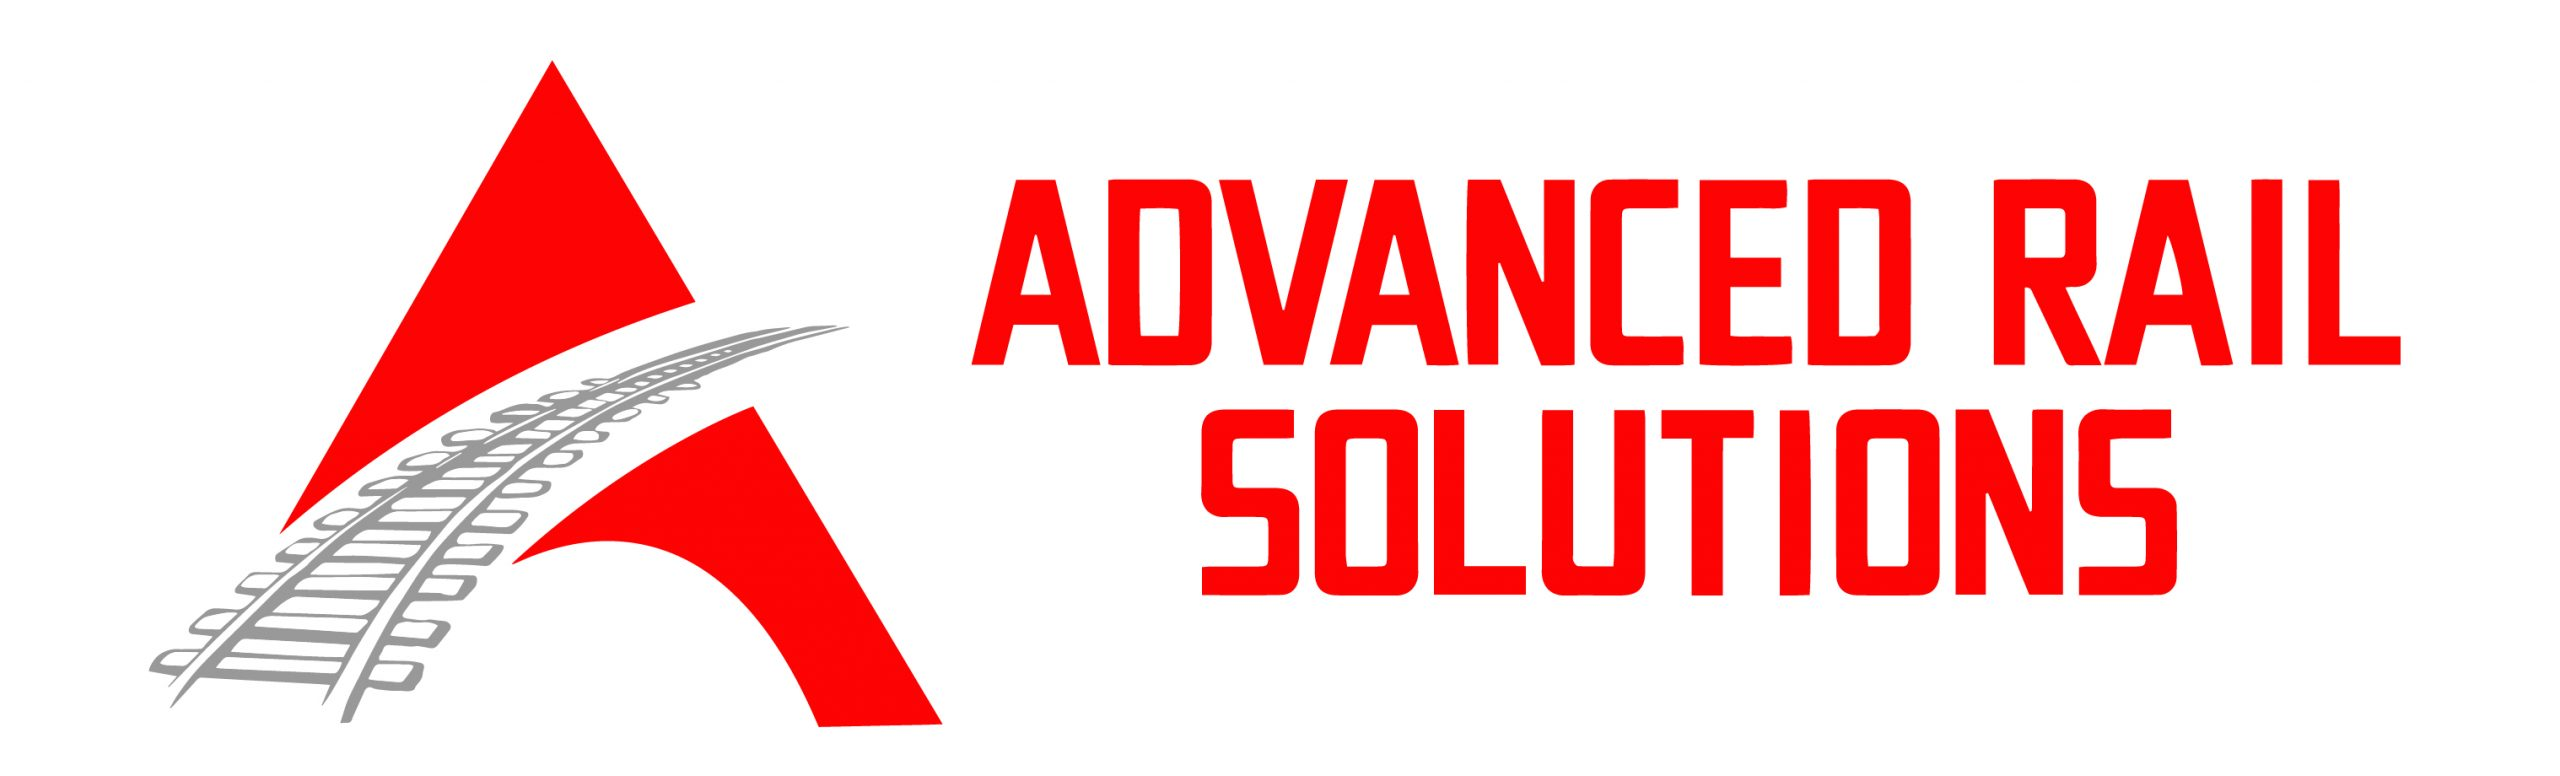 Advanced Rail Solutions Logo Wide Format 2020